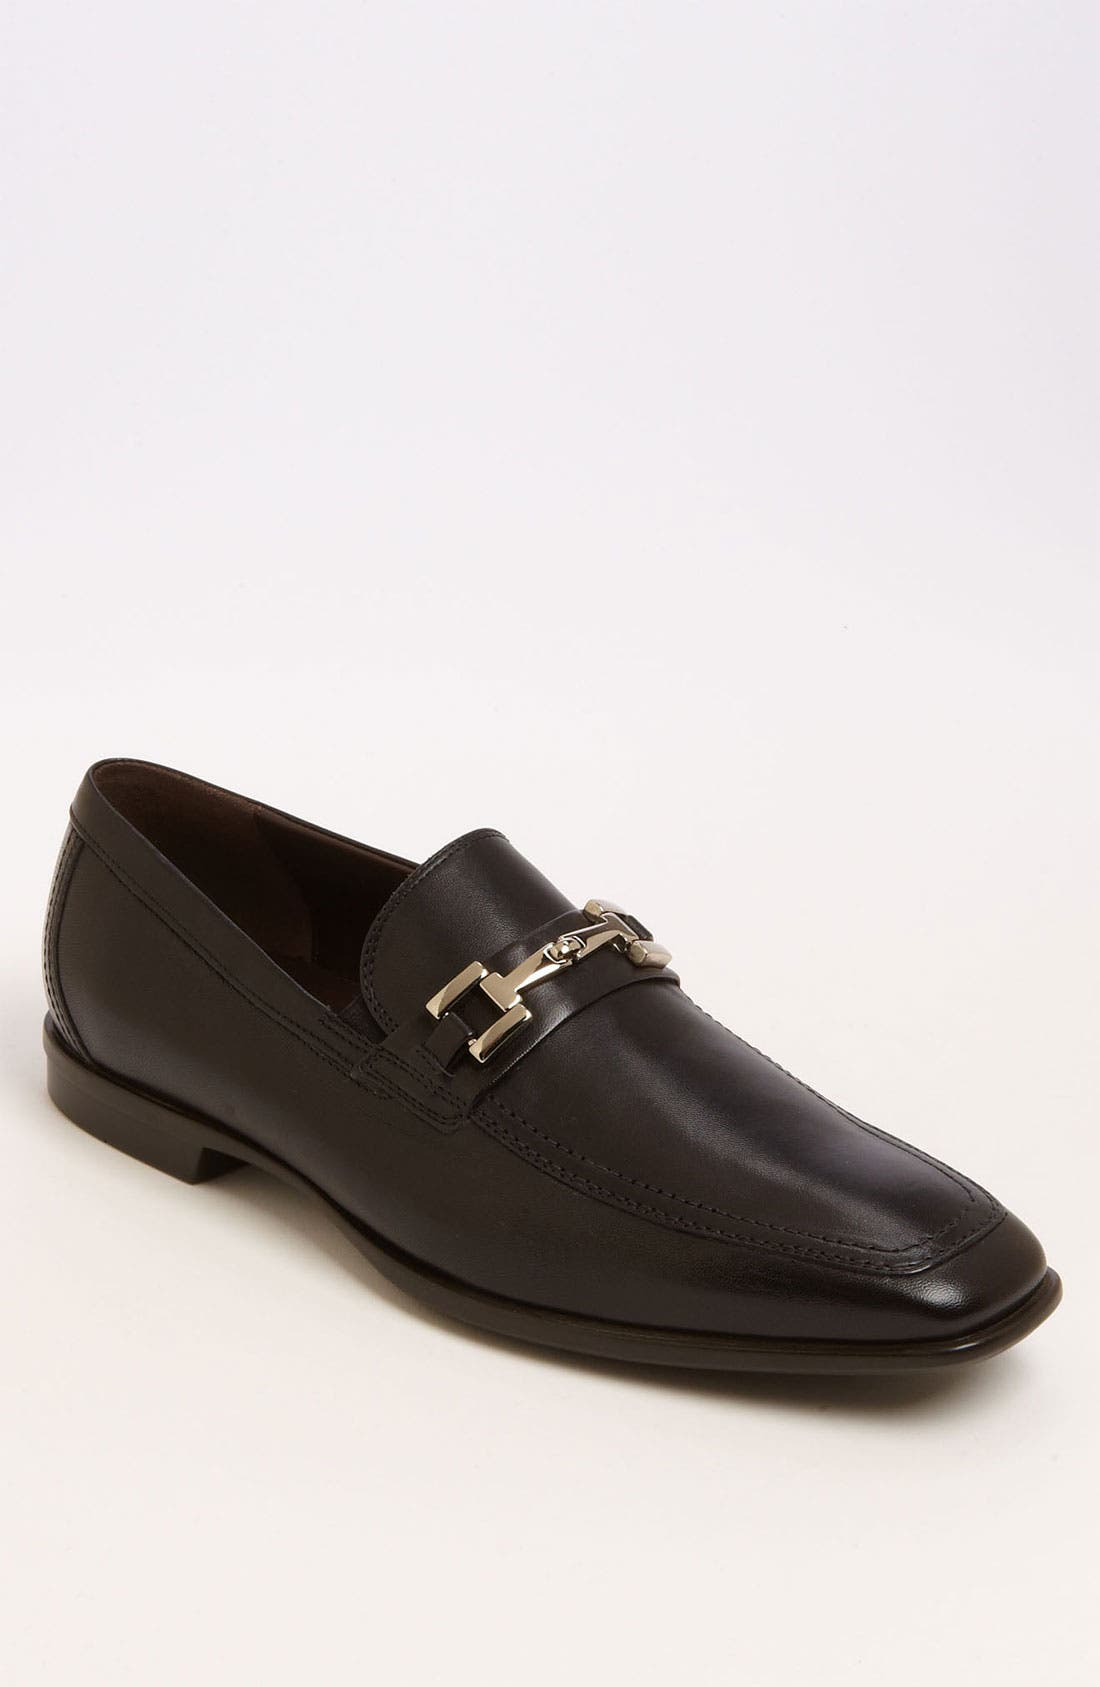 Alternate Image 1 Selected - Bruno Magli 'Idrav' Bit Loafer